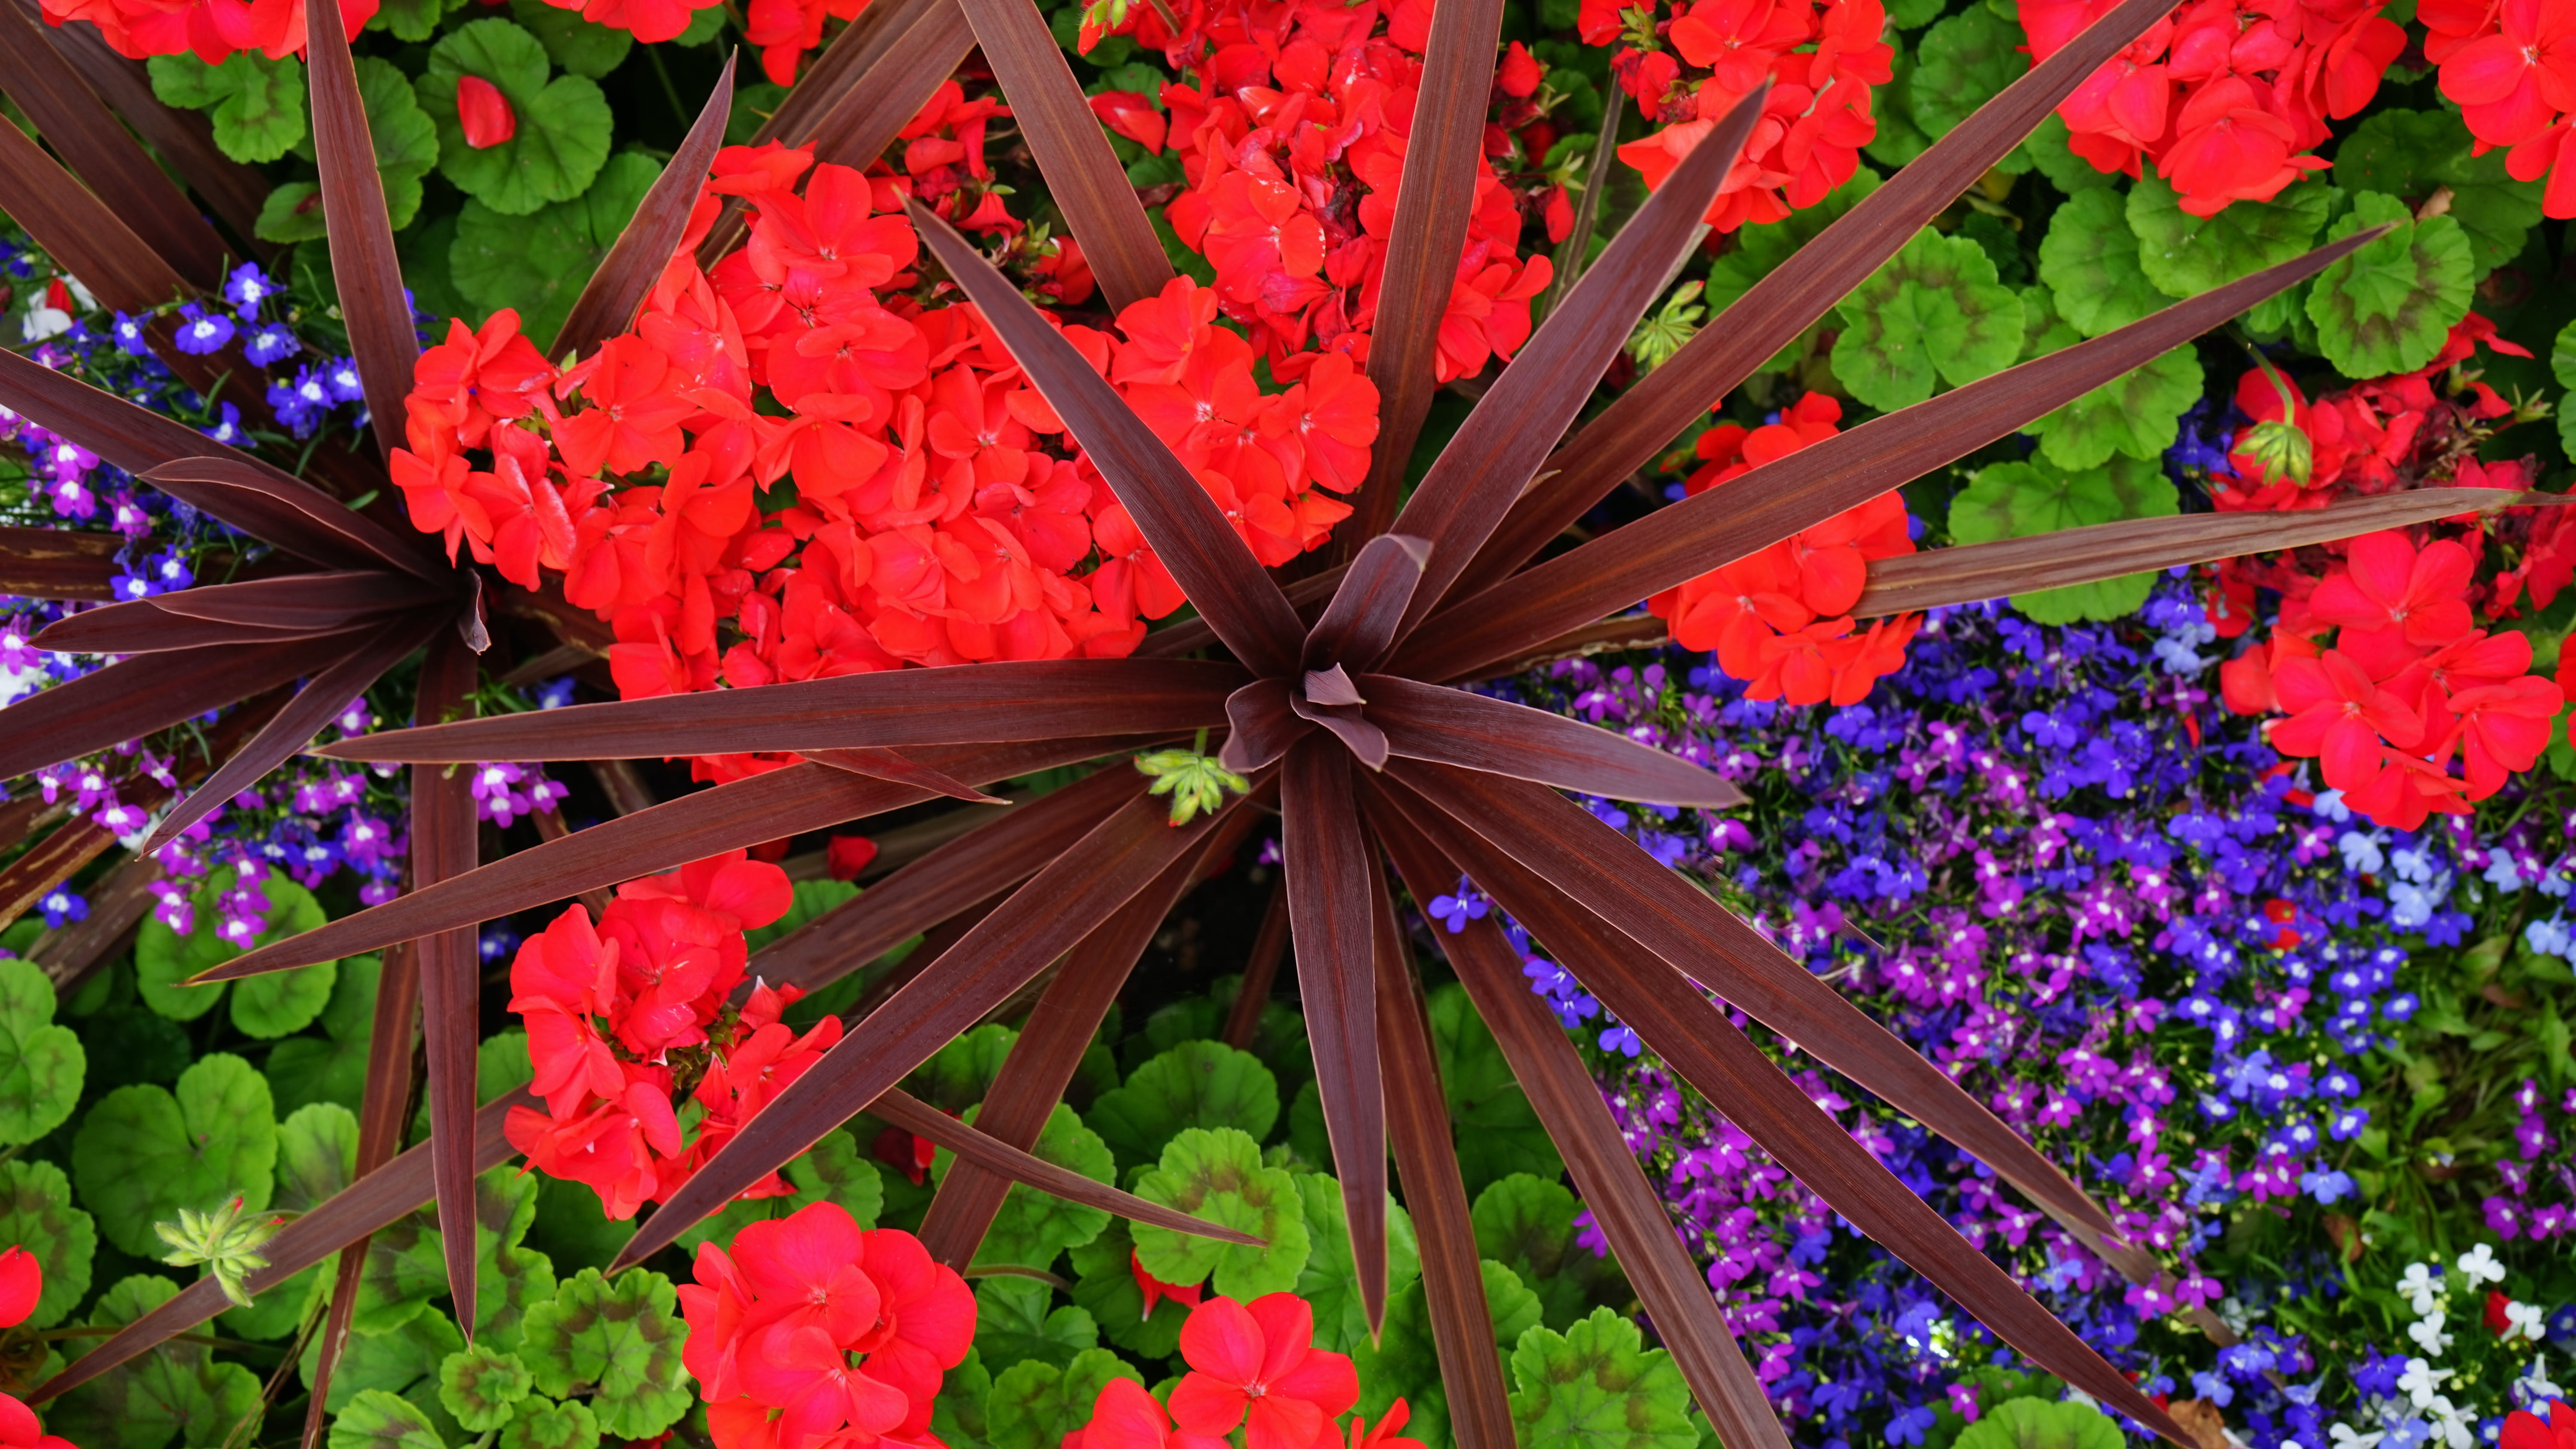 Close-up Photography of Multicolored Petaled Flowers